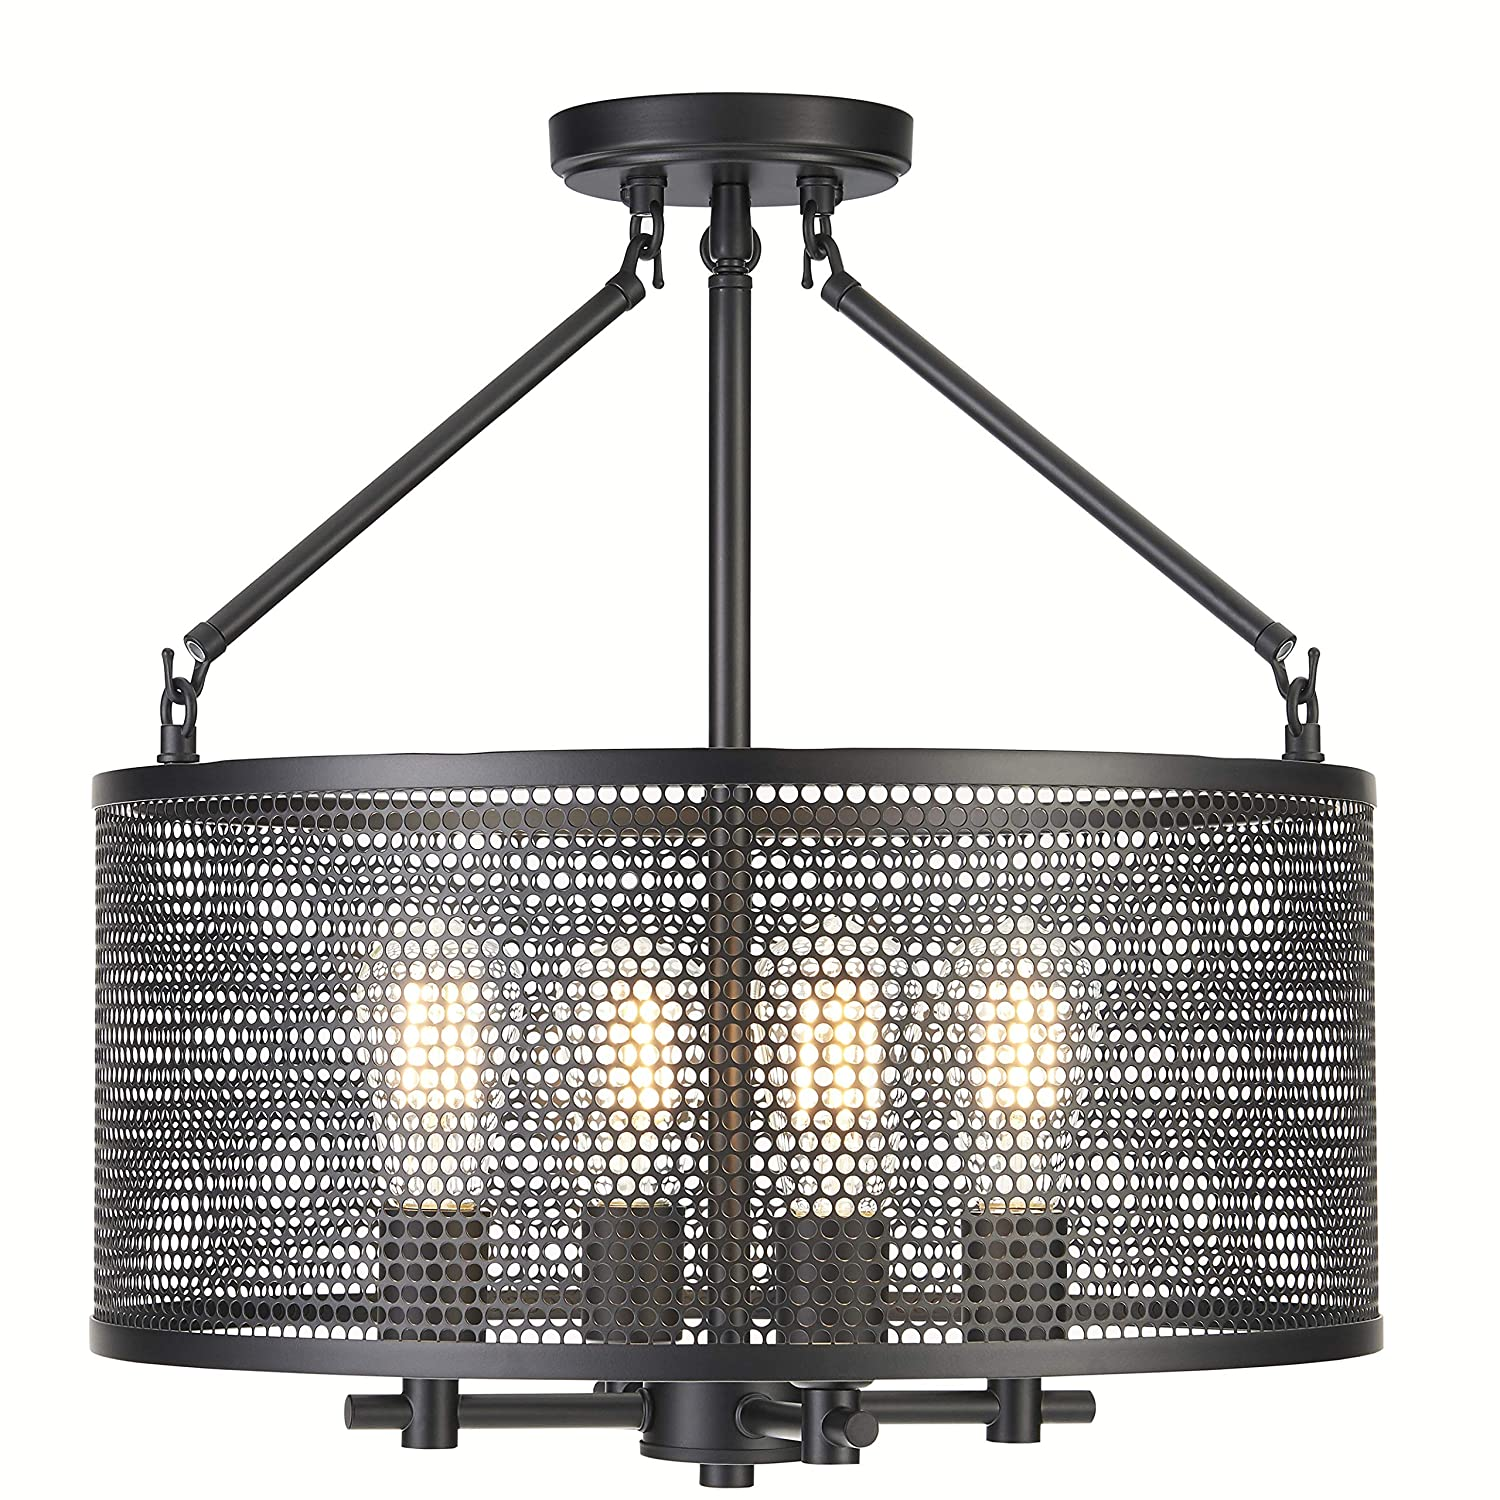 Gianna Chandelier Hanging Light Black Pendant Light with LED Bulbs LL-CL806-5BLK